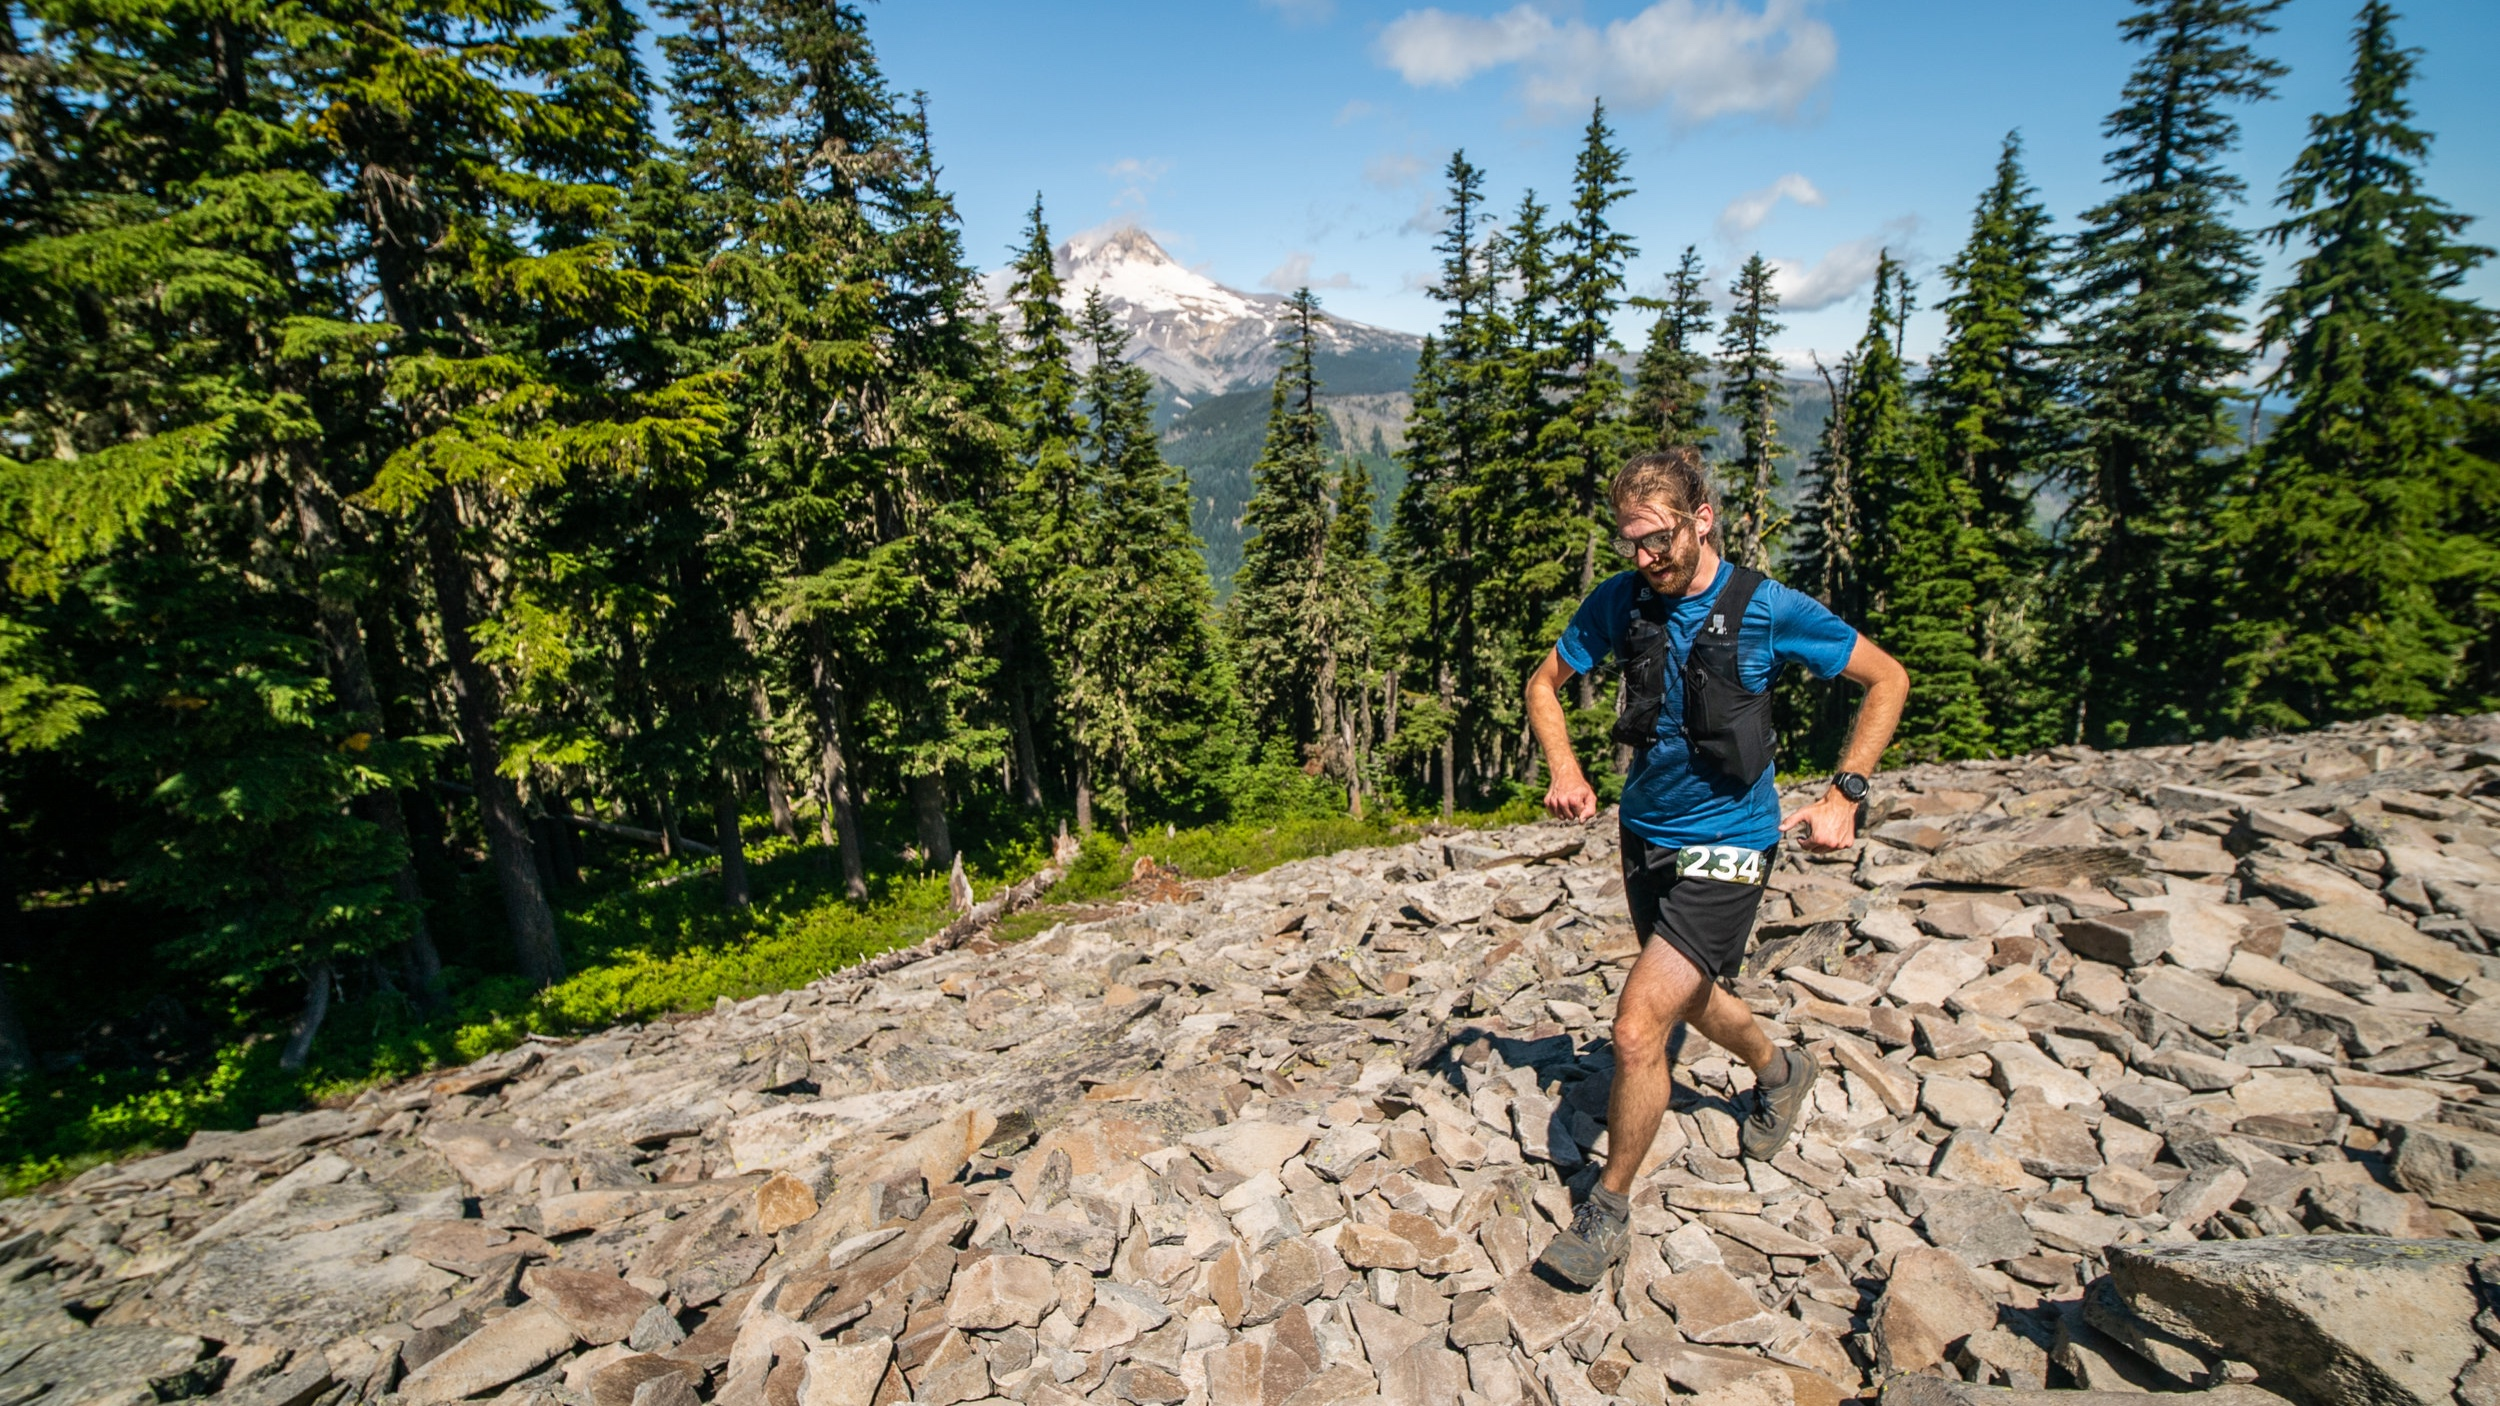 Wy'east howl 50K - Point-to-point ridge trails onto Mt. Hood!July 25, 2020